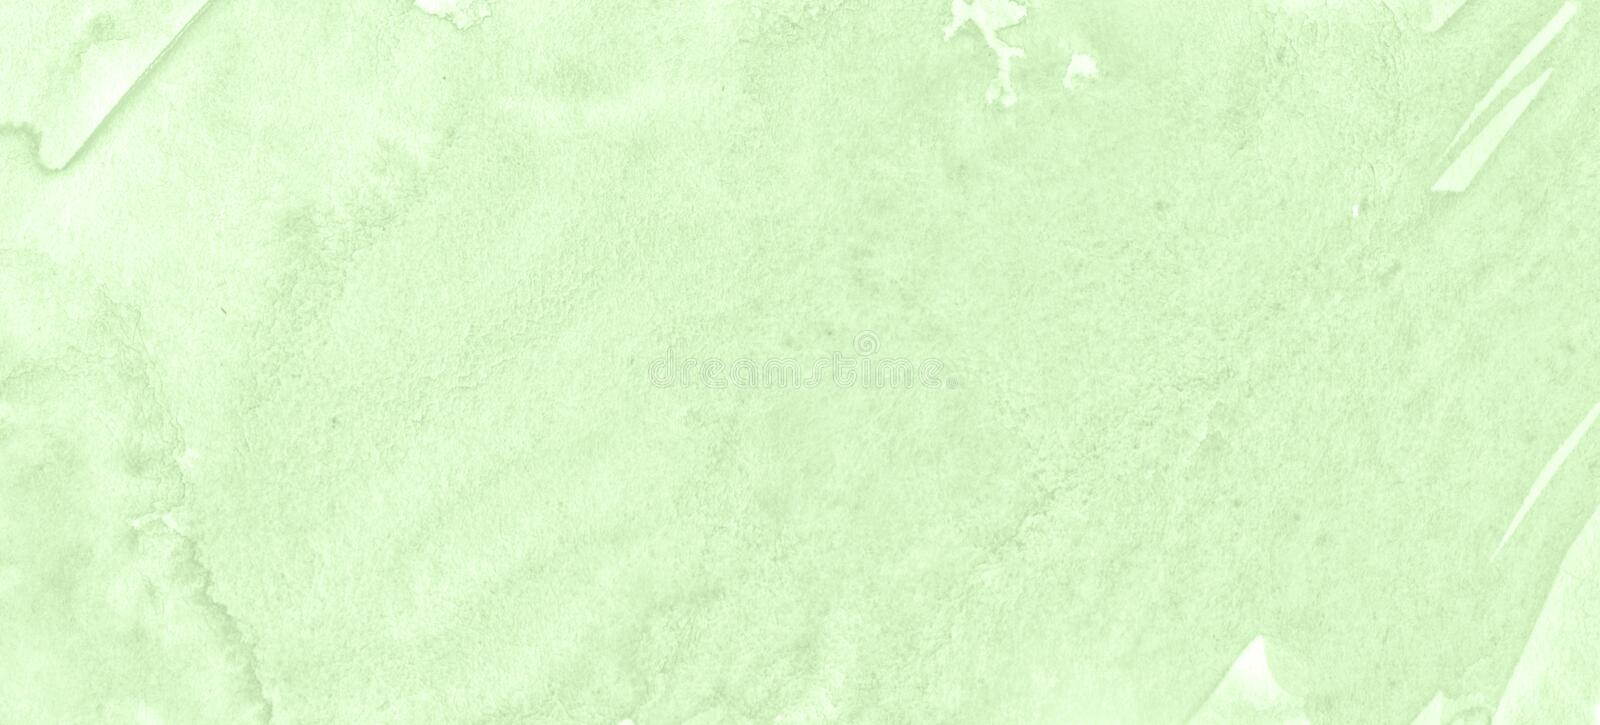 Light green watercolor frame with torn strokes and stripes. Abstract background for design stock images